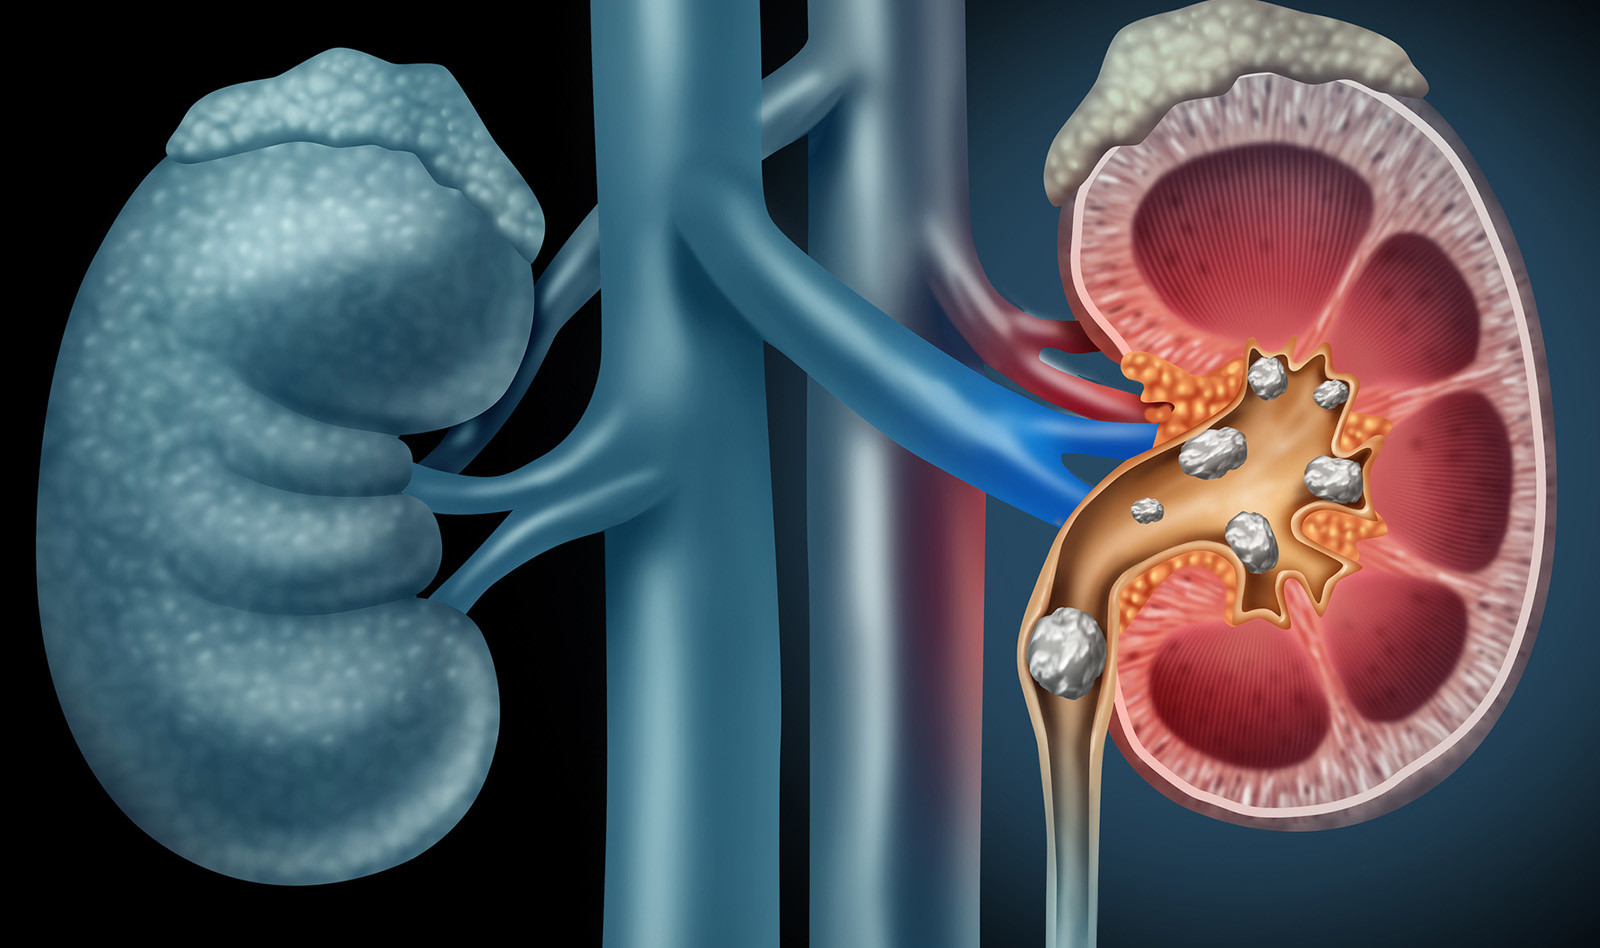 What is renal colic and its causes?